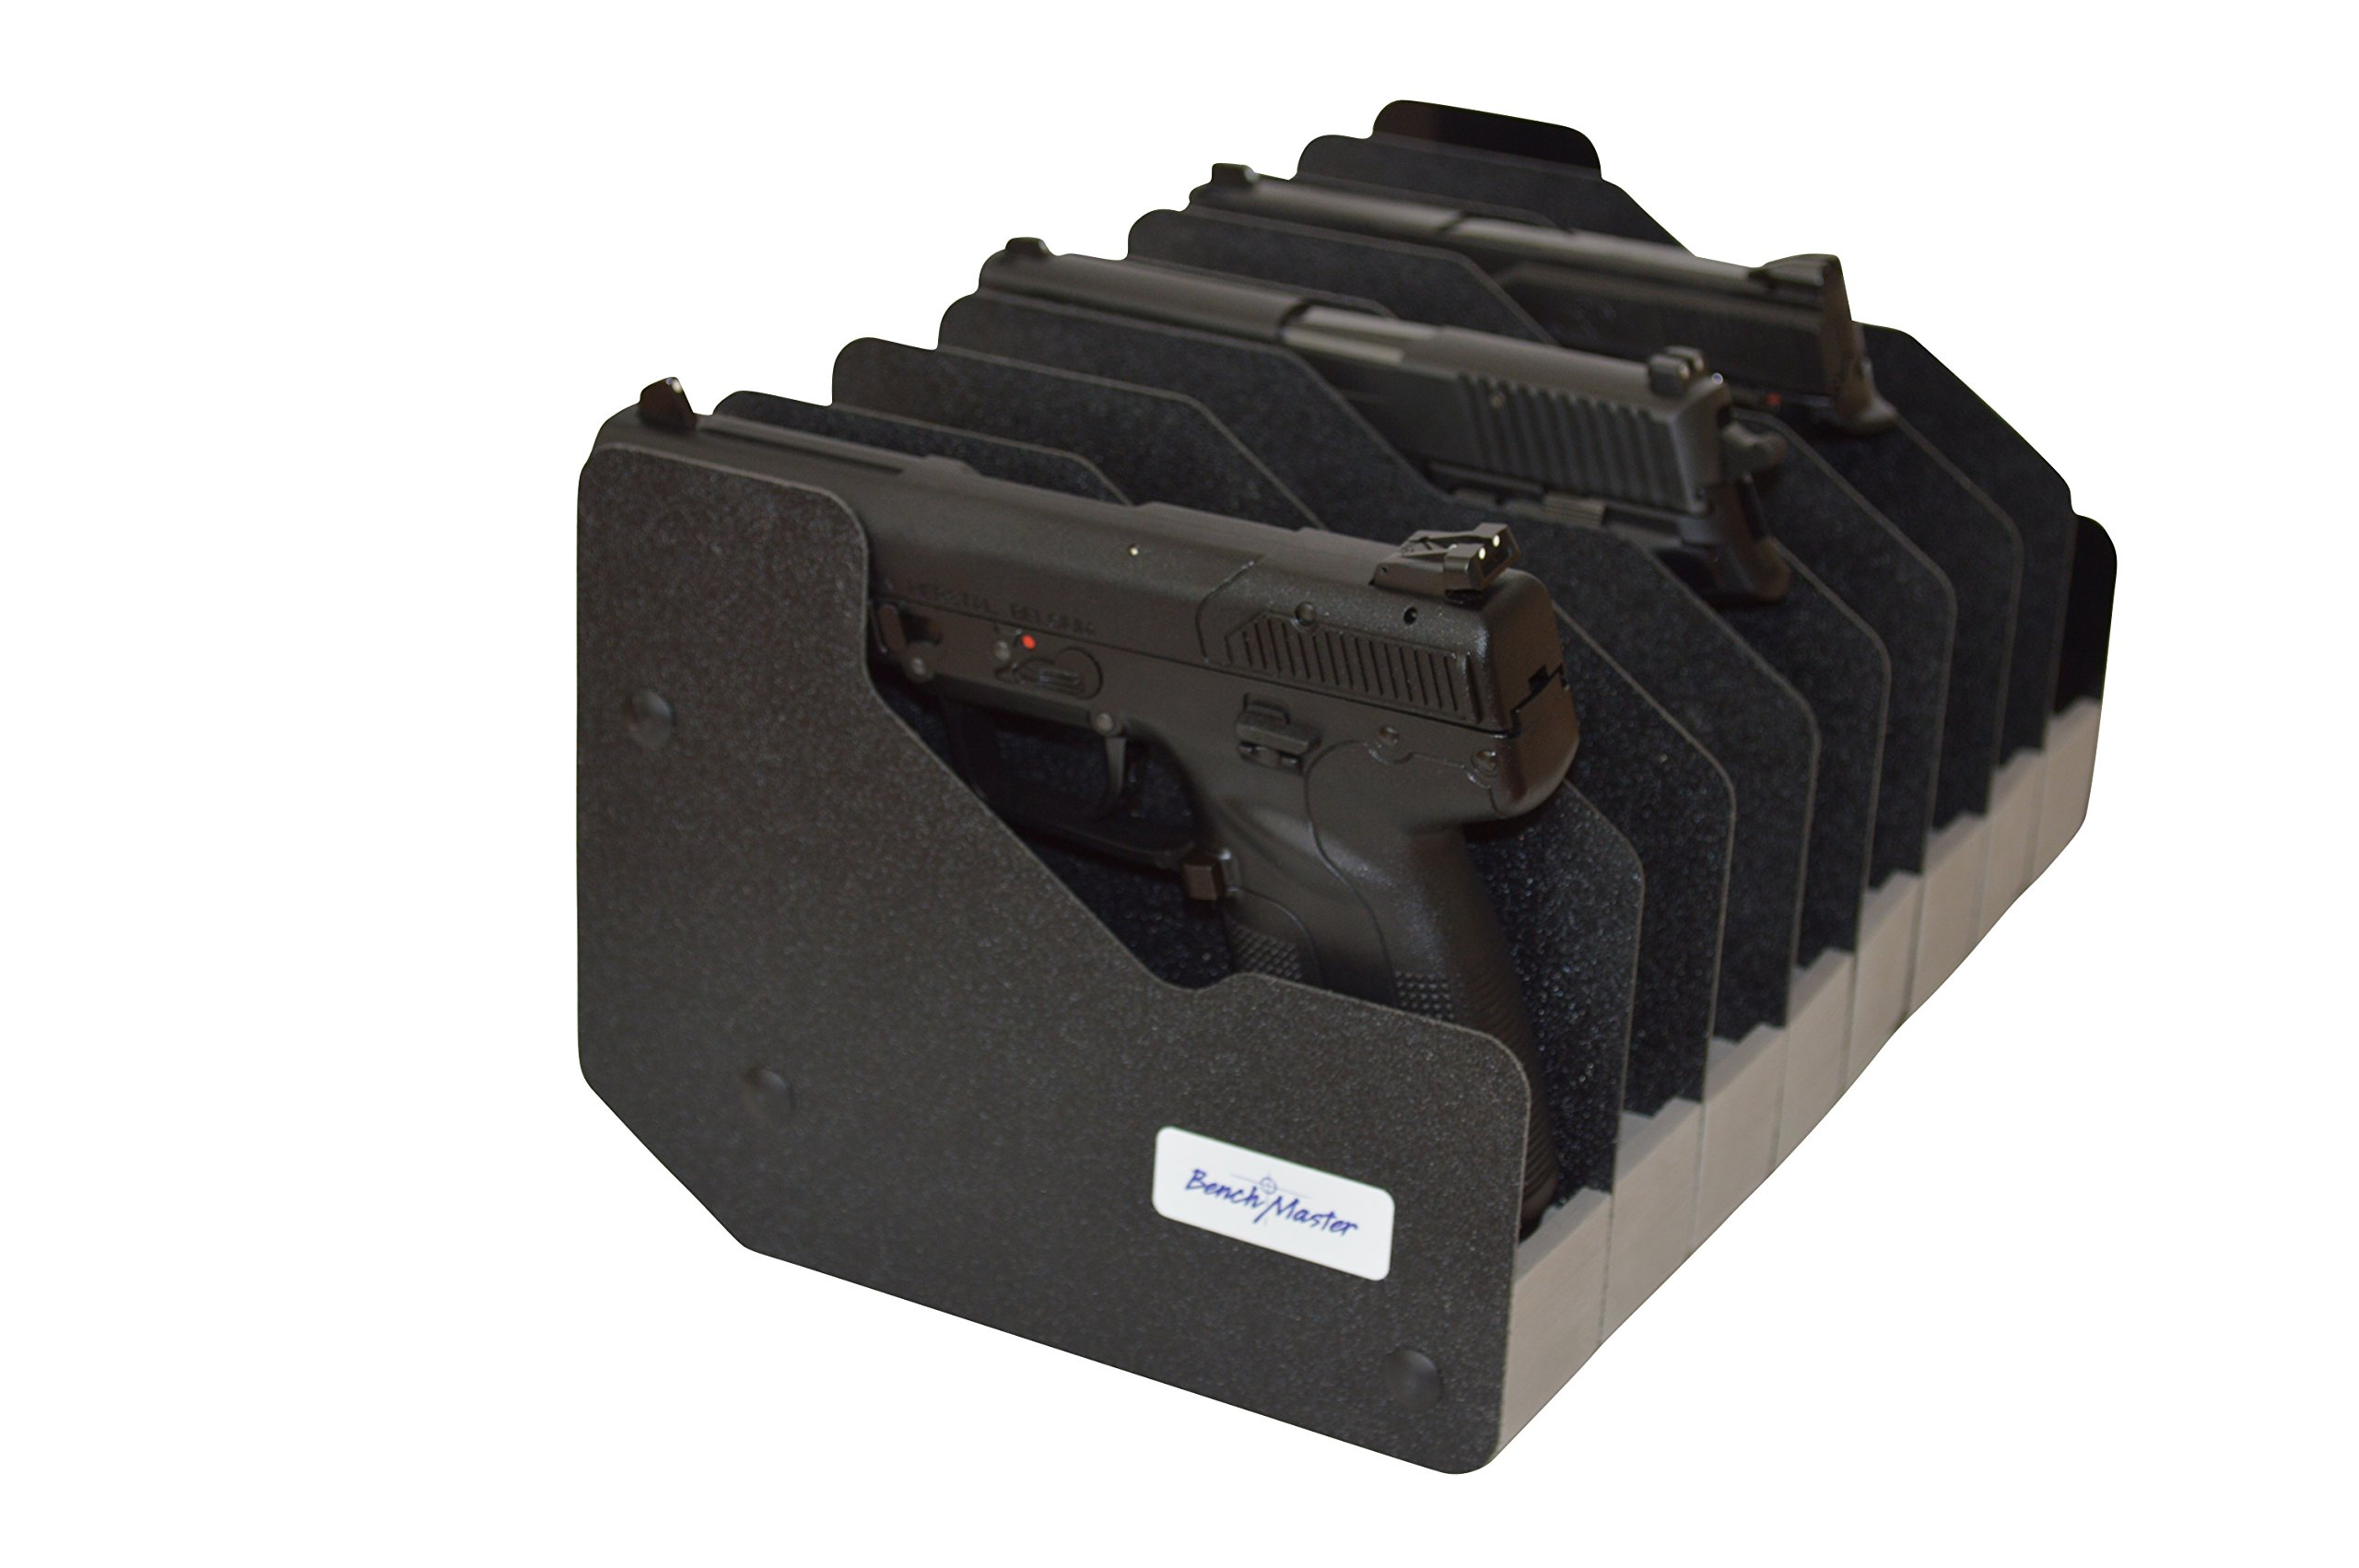 Benchmaster - Weapon Rack - Eight (8) Gun Pistol Rack - Gun Safe Storage Accessories - Gun Rack by BenchMaster